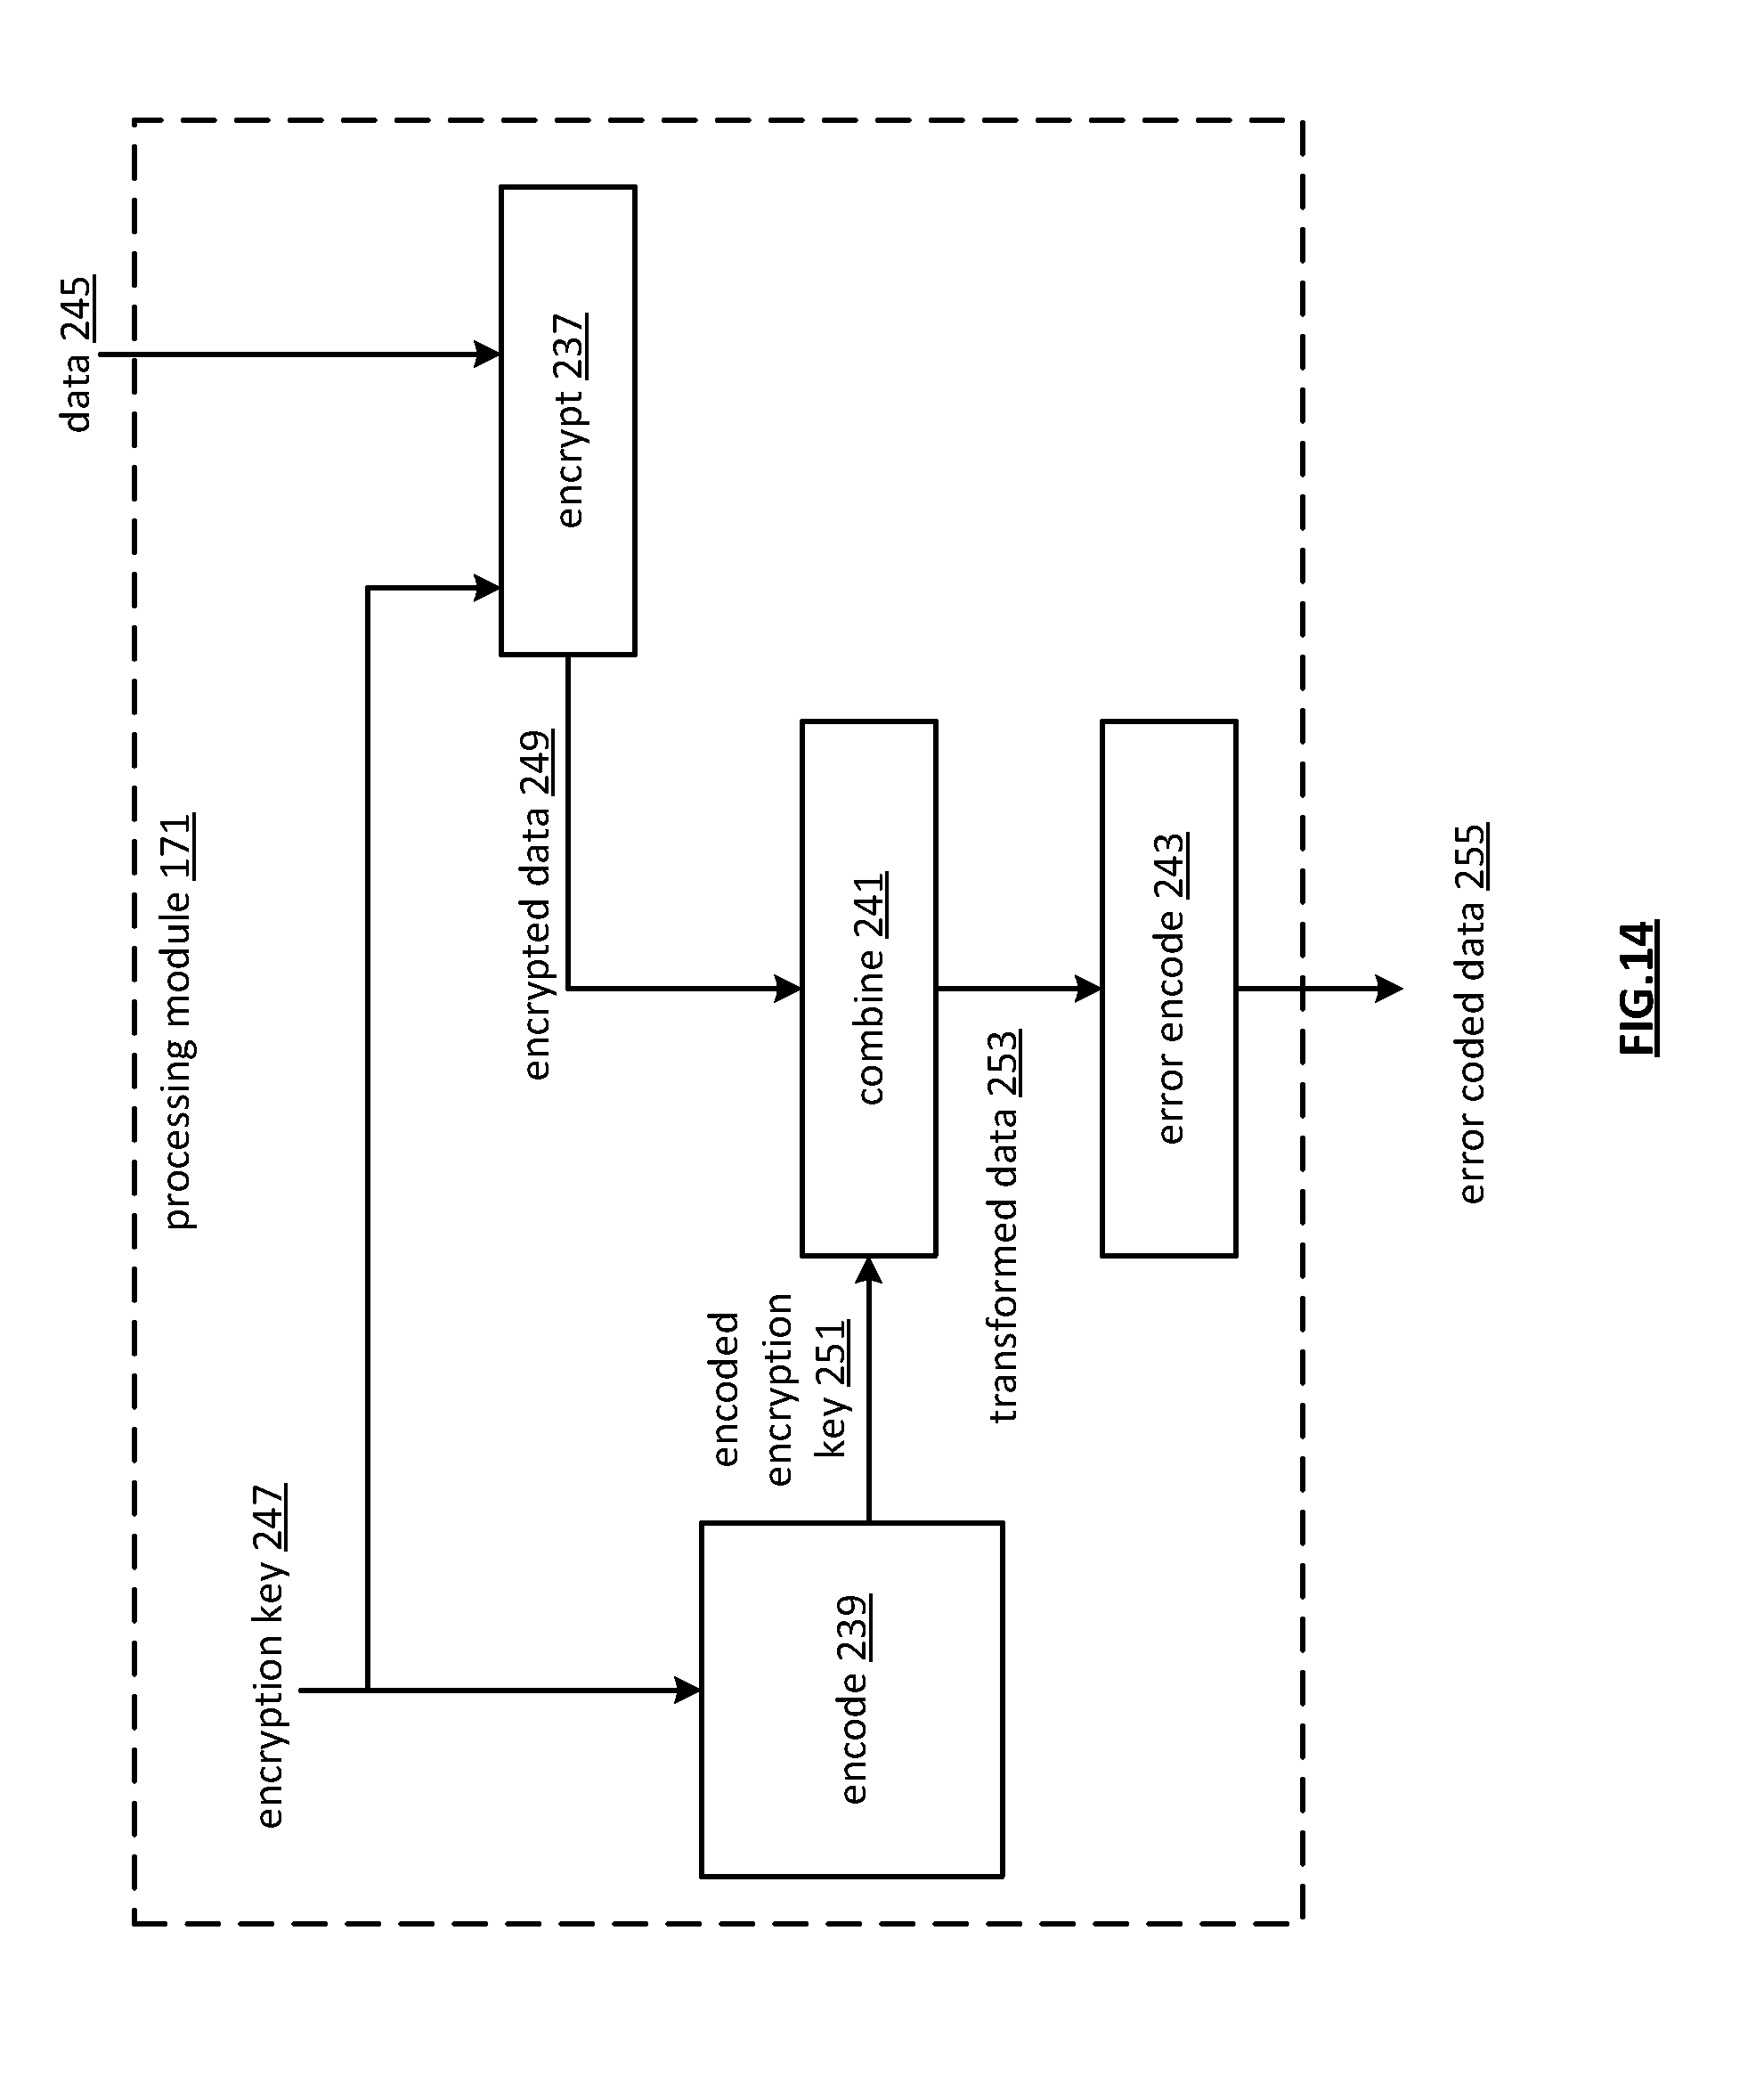 Sample Patent Claims for Common Inventions